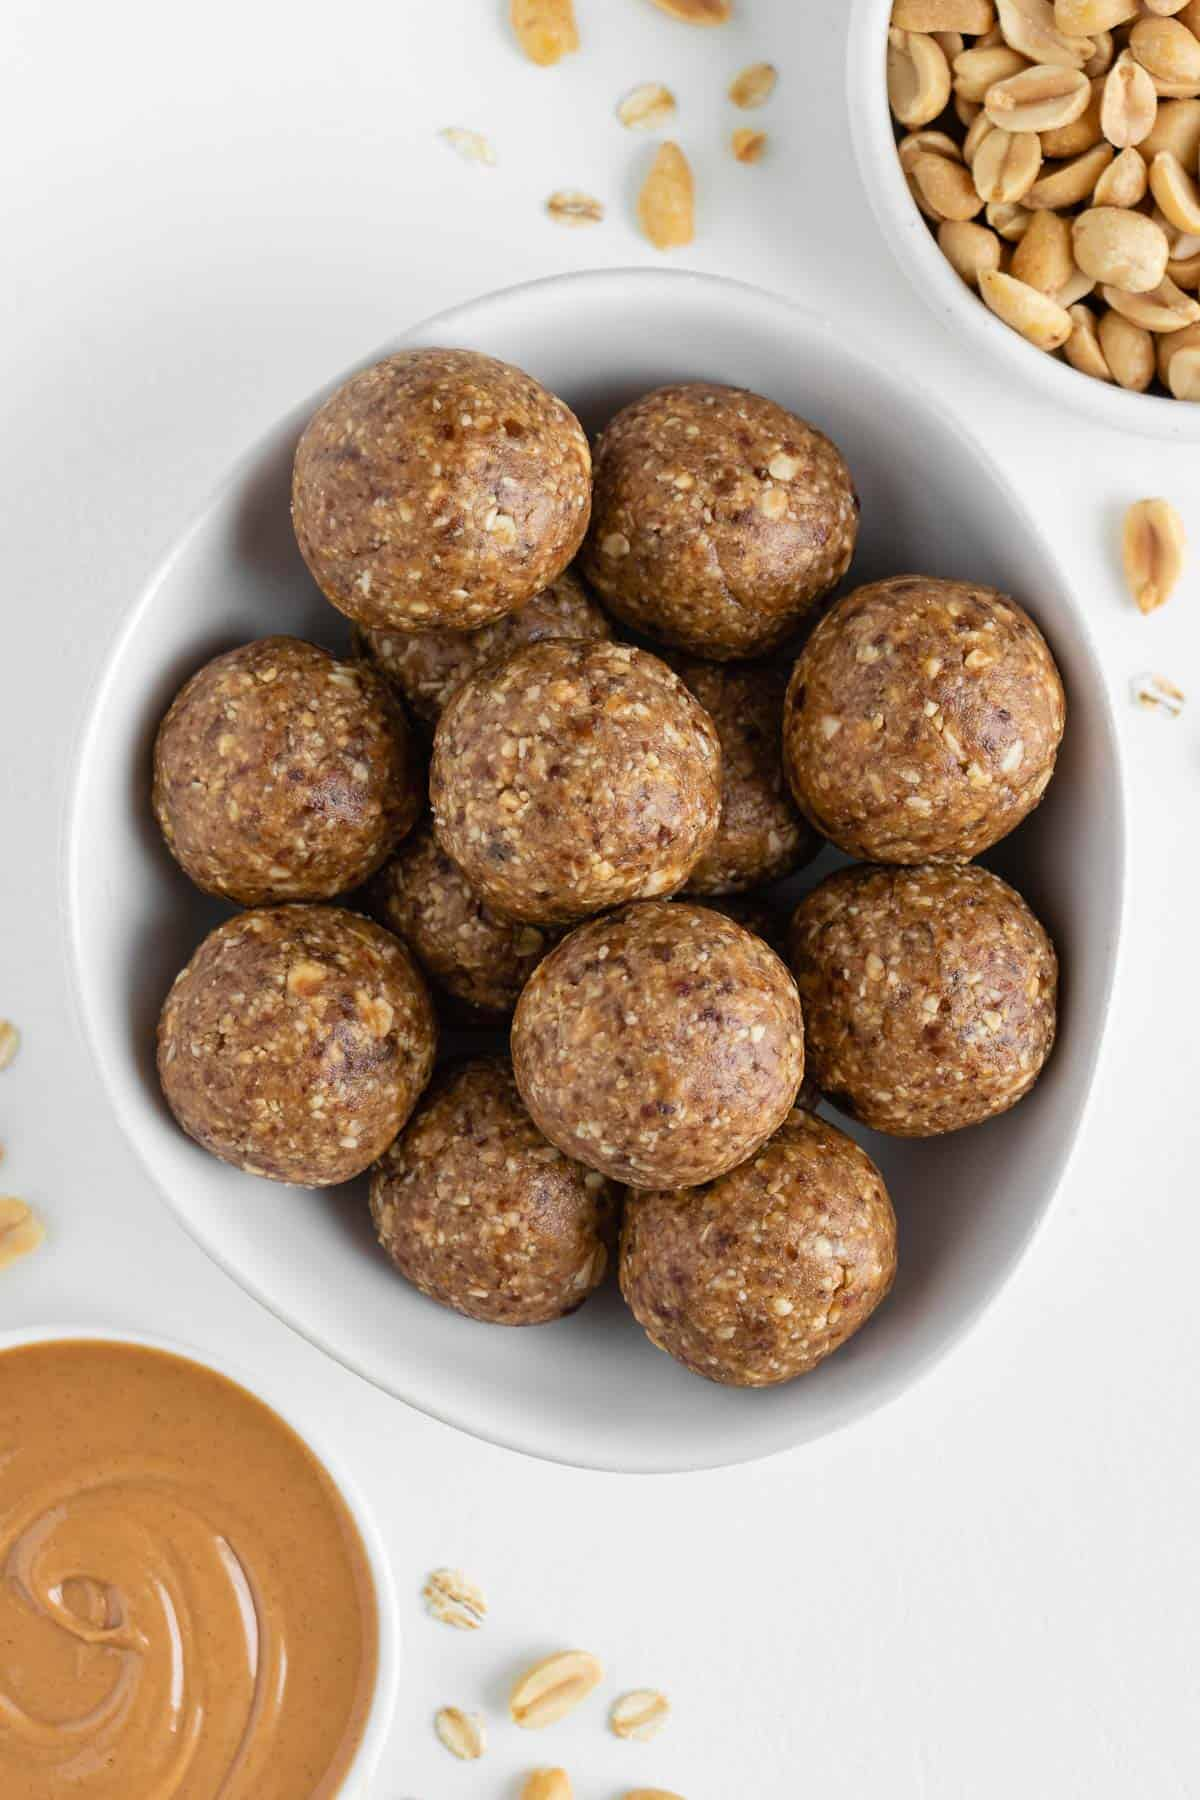 peanut butter energy balls stacked inside a white bowl surrounded by a bowl of peanut butter and a bowl of nuts